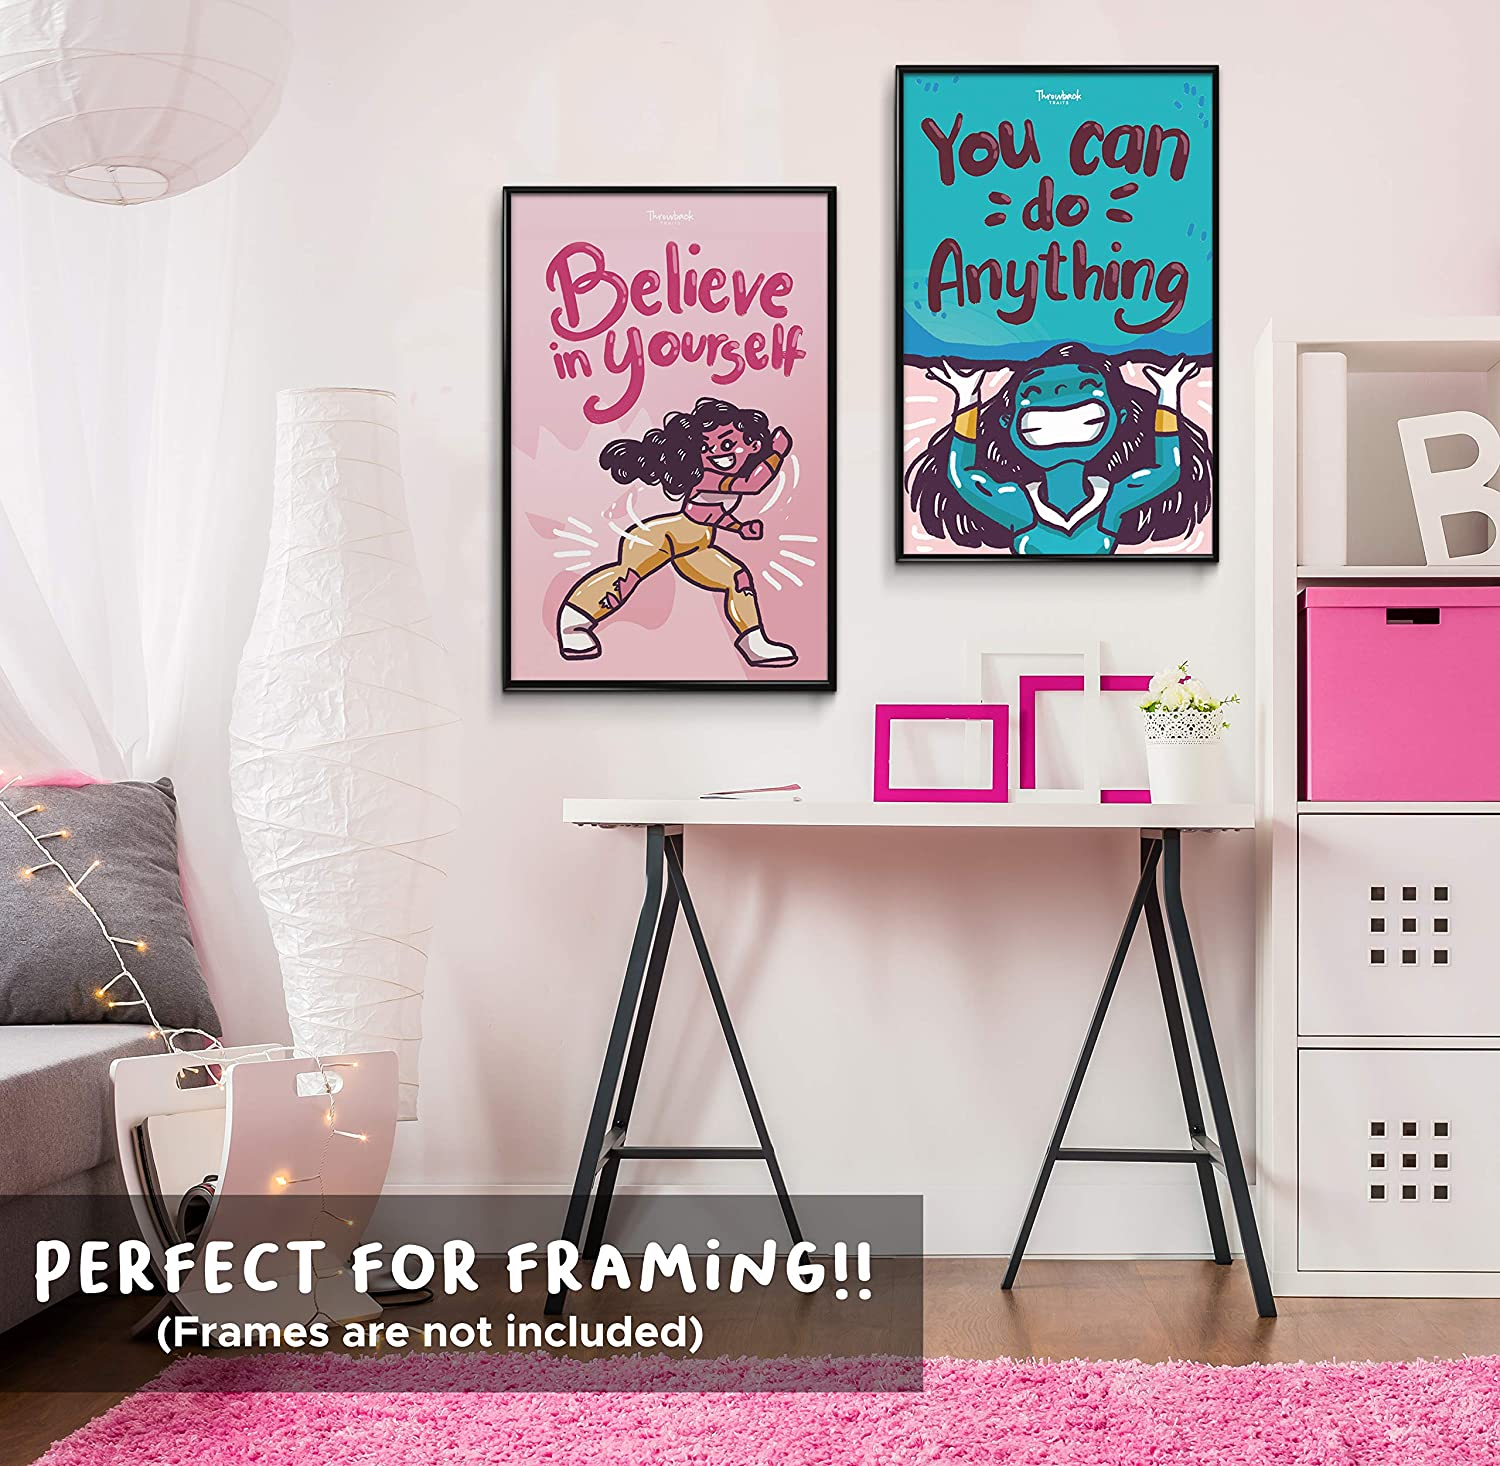 Kids Room Motivational Poster Girls Room Decor Gifts For Girls Or Teens Bedroom Decor Girl Wall